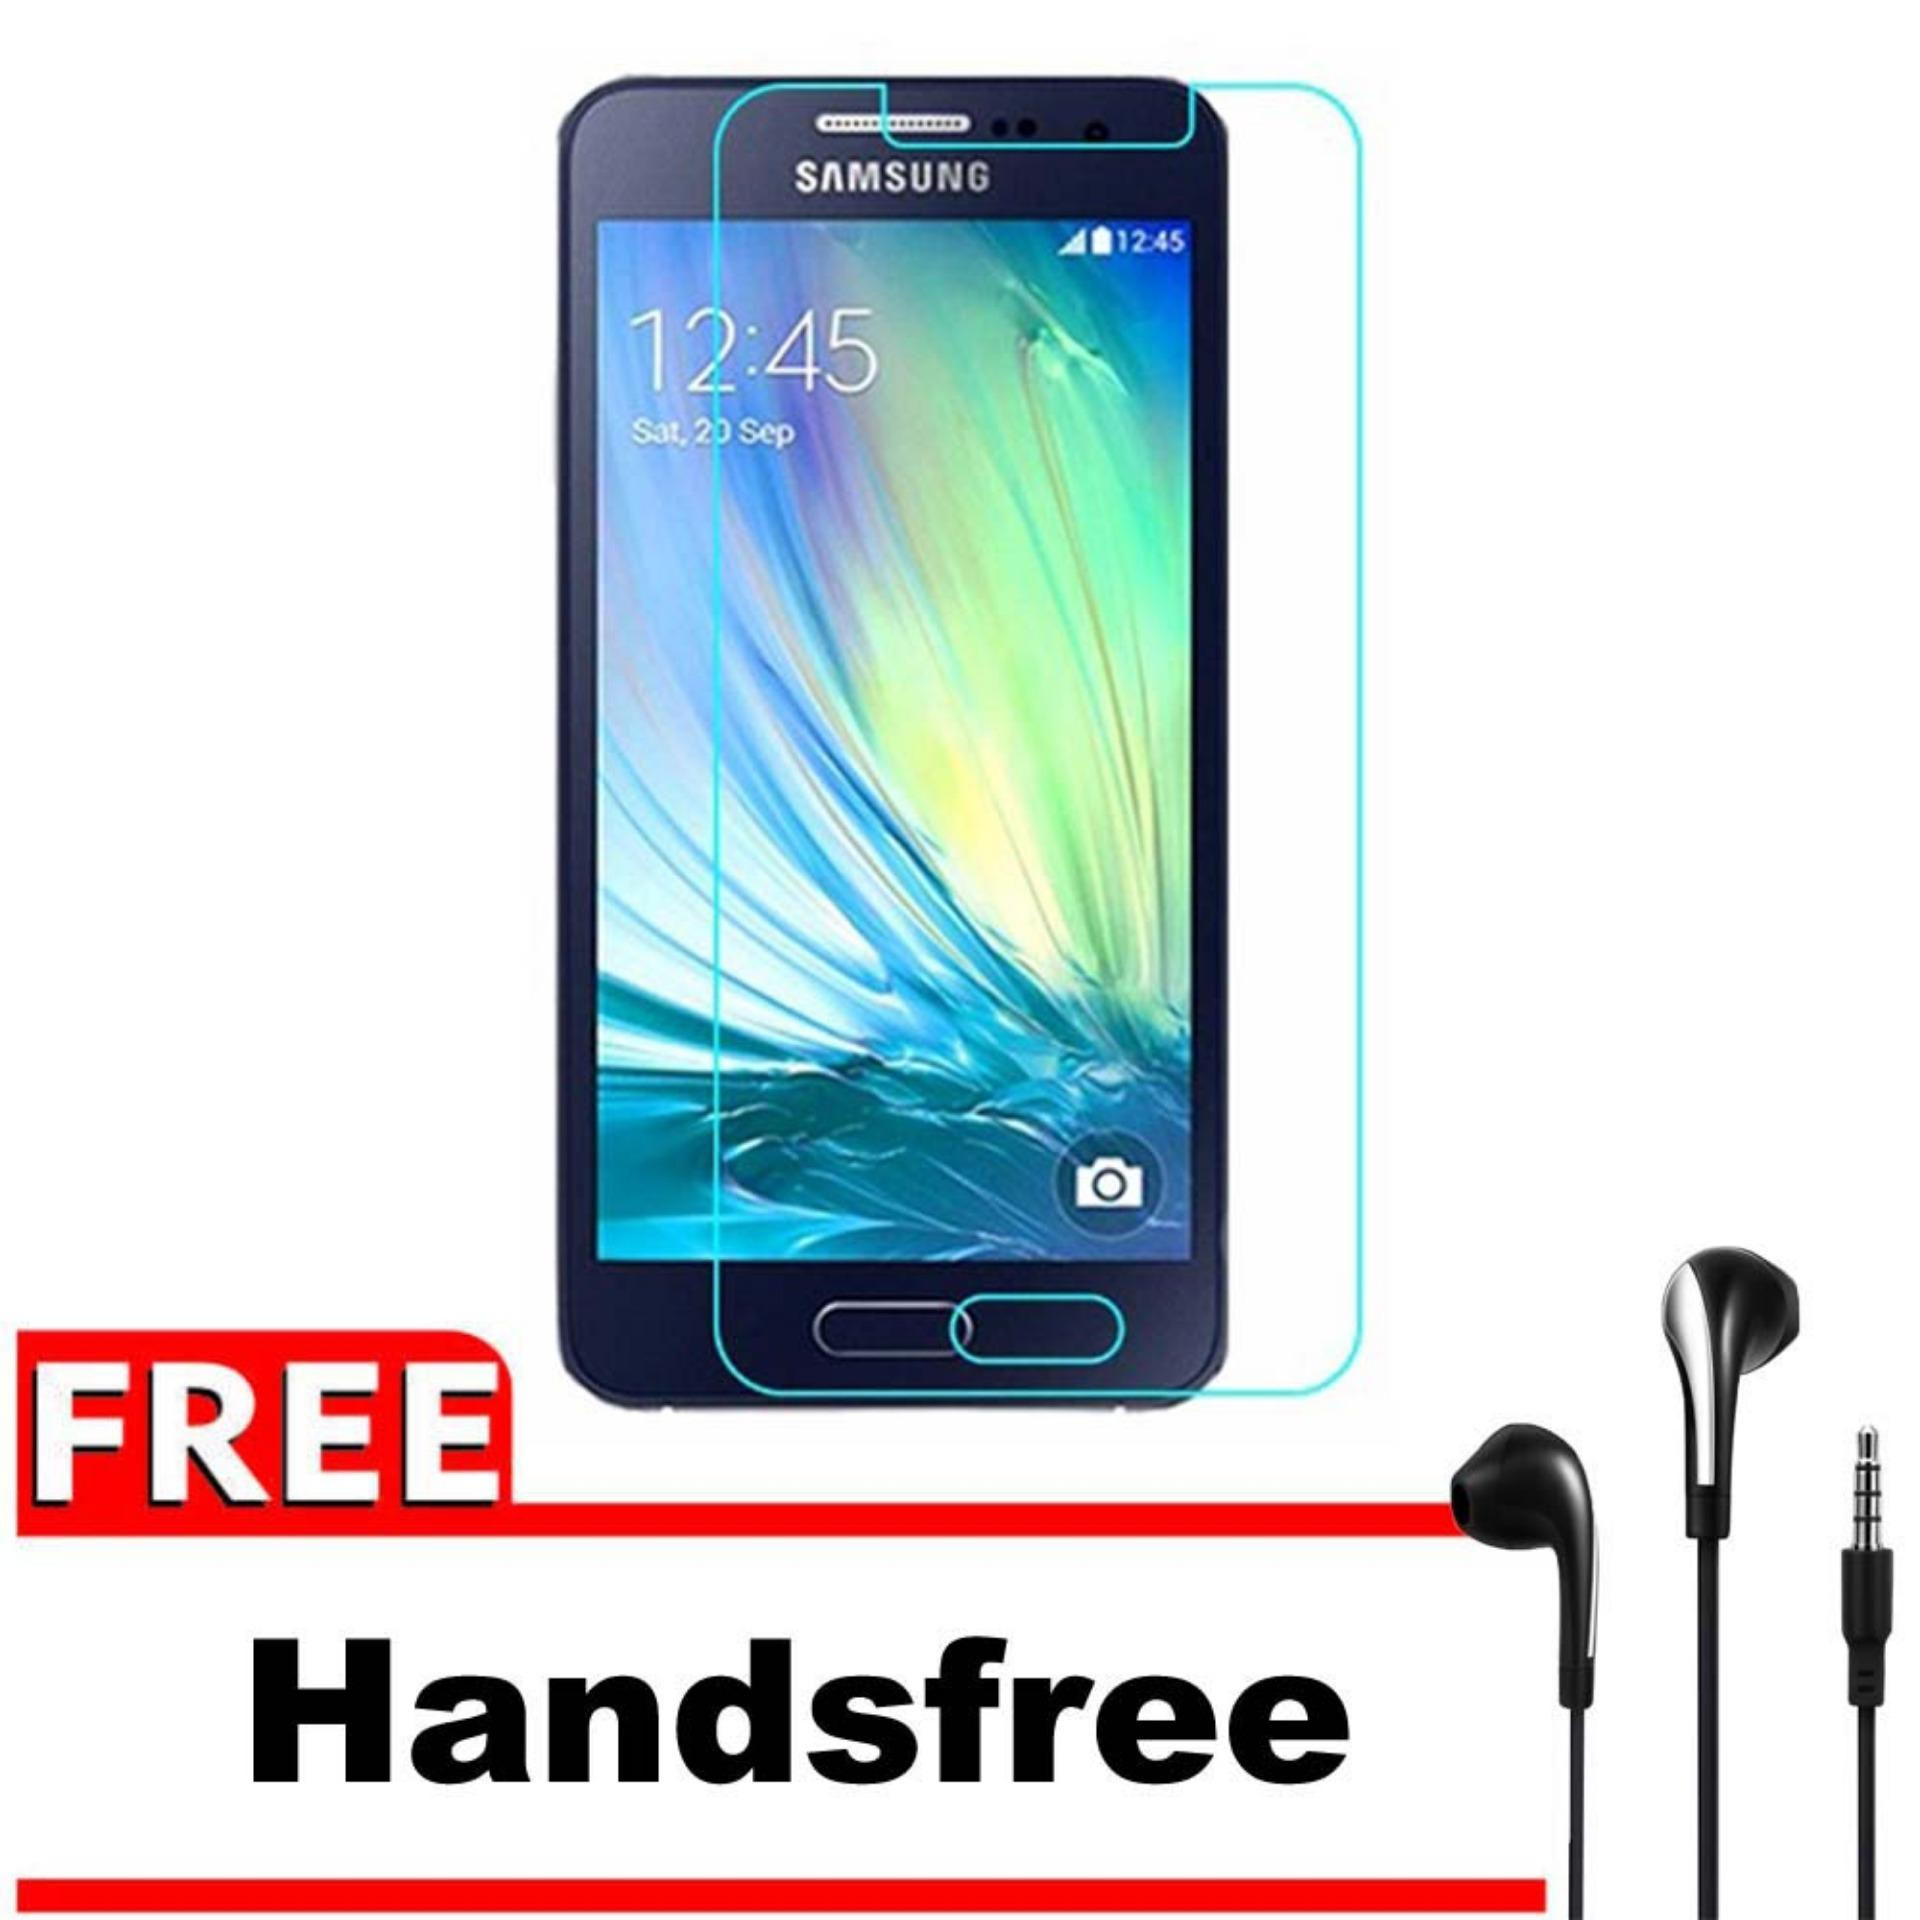 Vn Samsung Galaxy A3 (2015) / A300 / 4G LTE / Duos Tempered Glass 9H Screen Protector 0.32mm + Grat